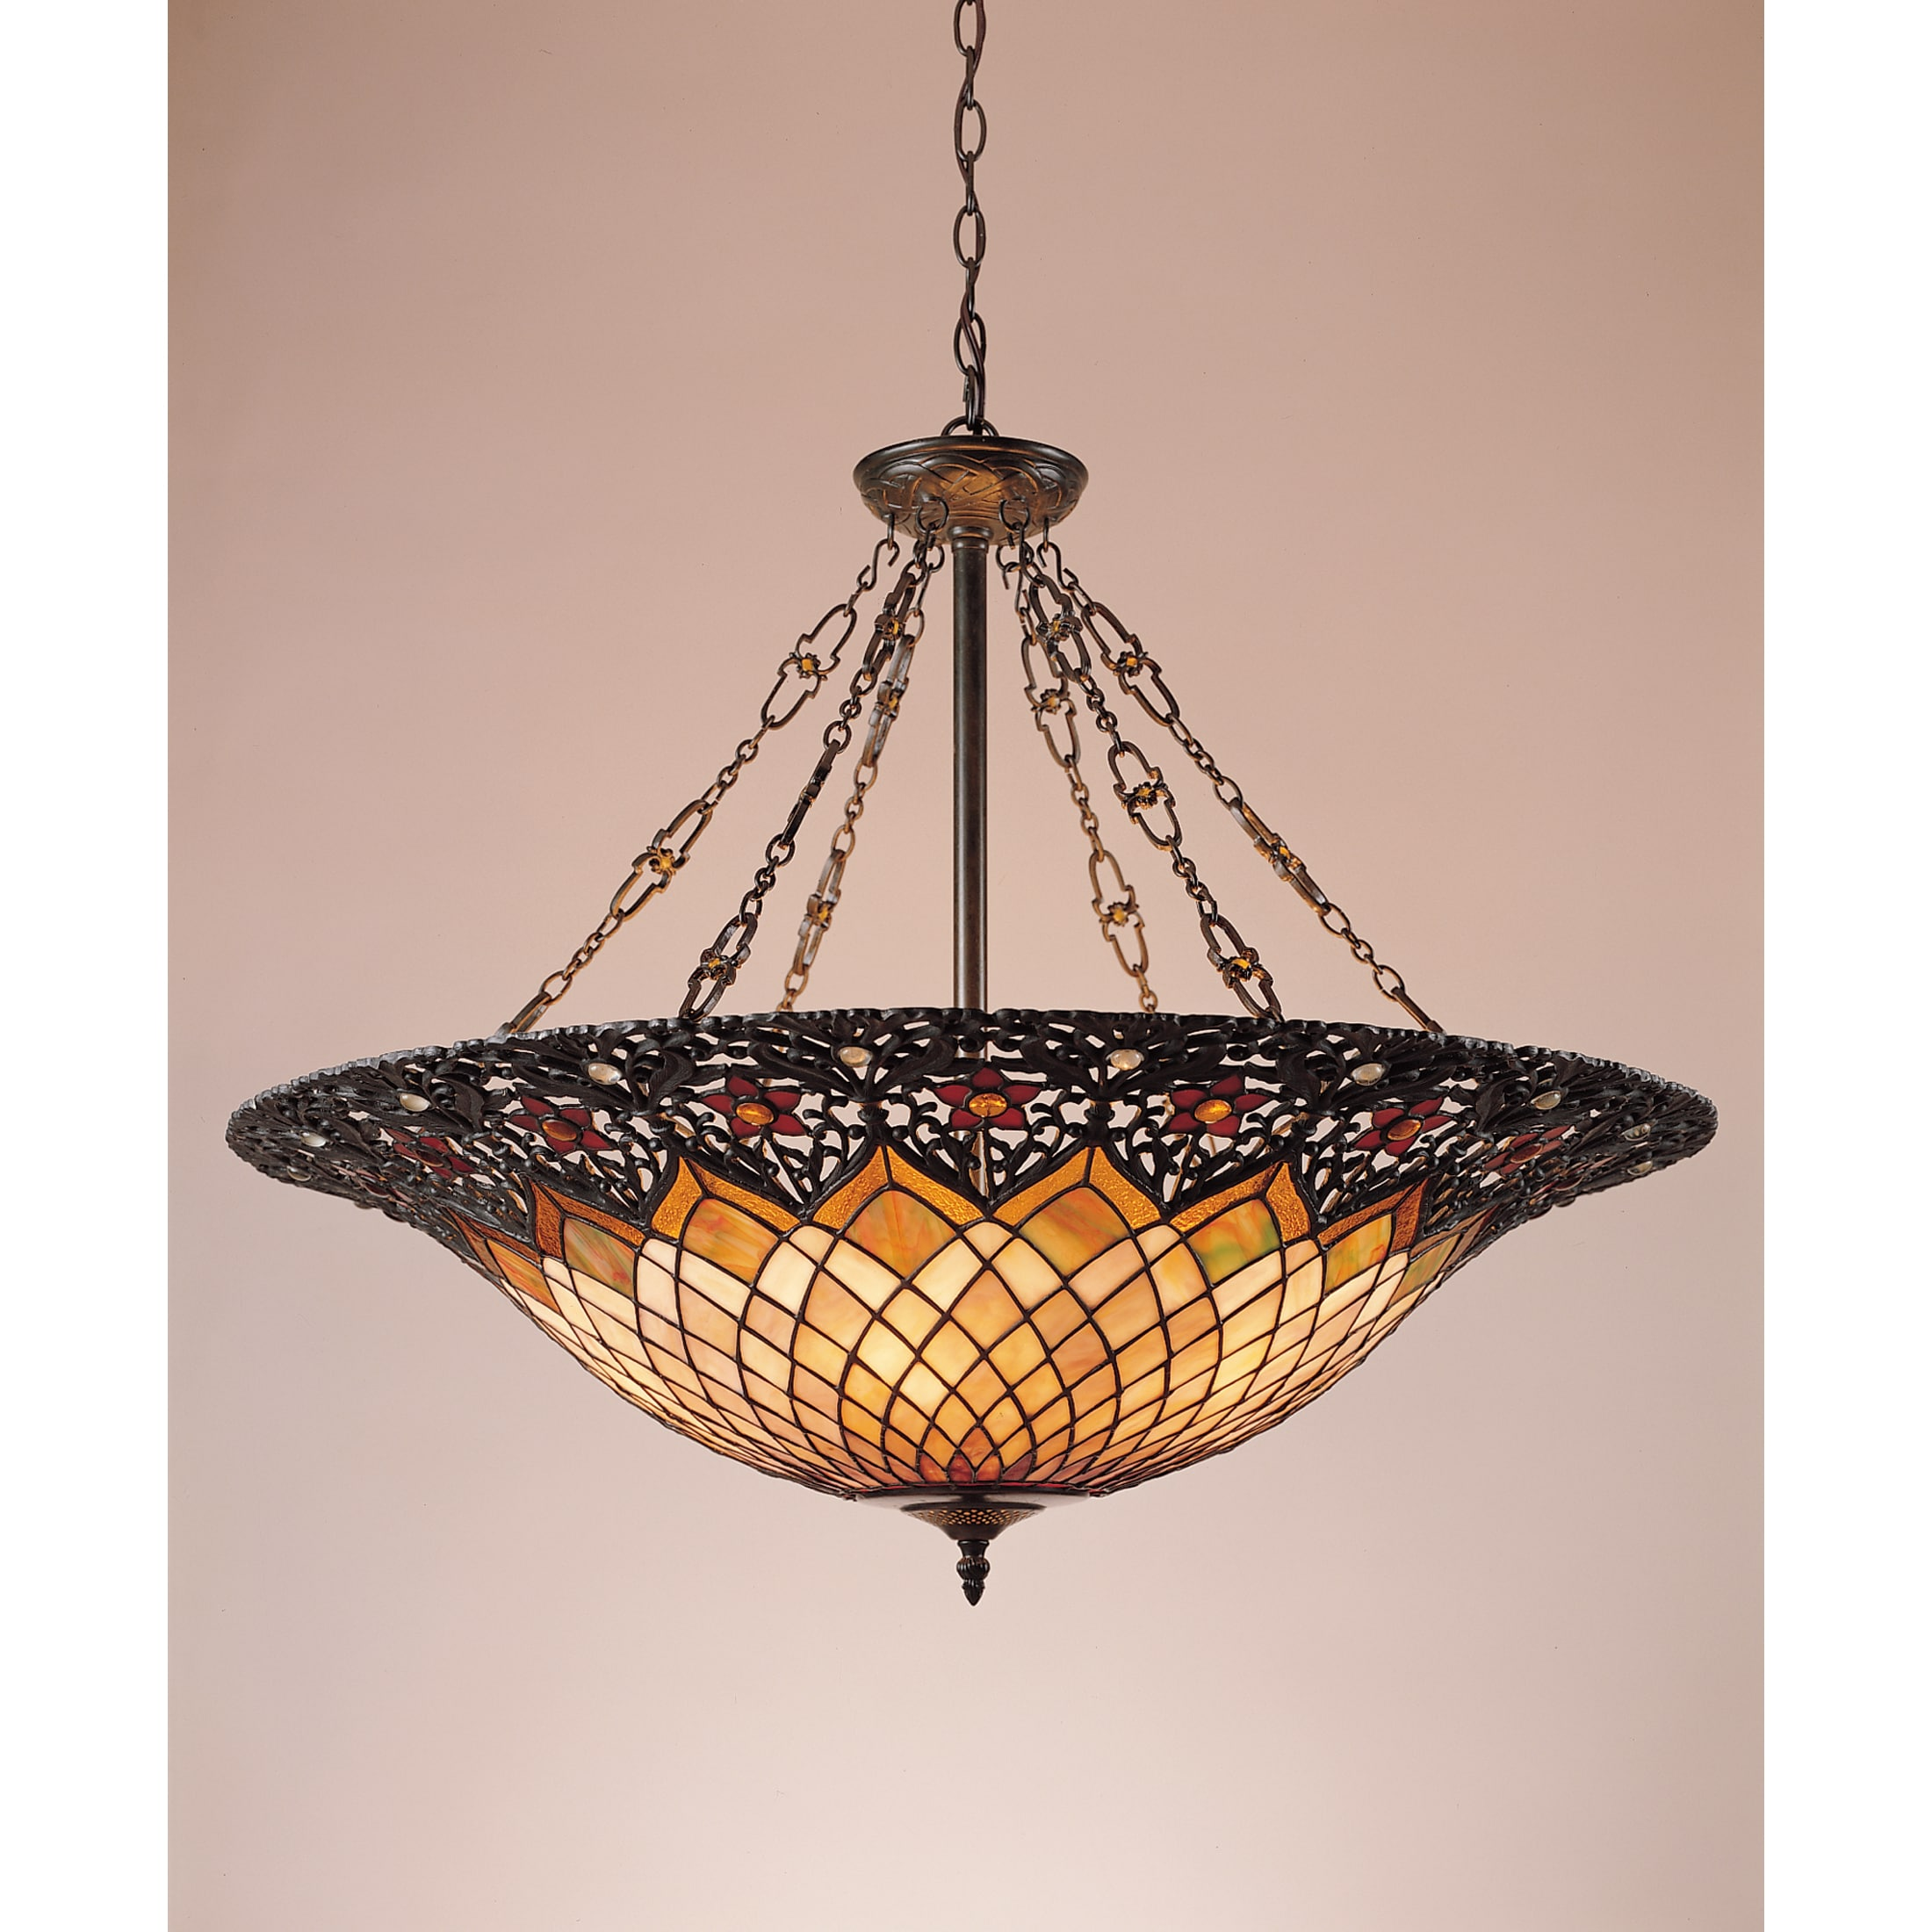 Shop Black Friday Deals On Copper Grove Primorsko Quoizel Tiffany Style 6 Light Vintage Bronze Pendant 6 Bronze 6 Overstock 8463666